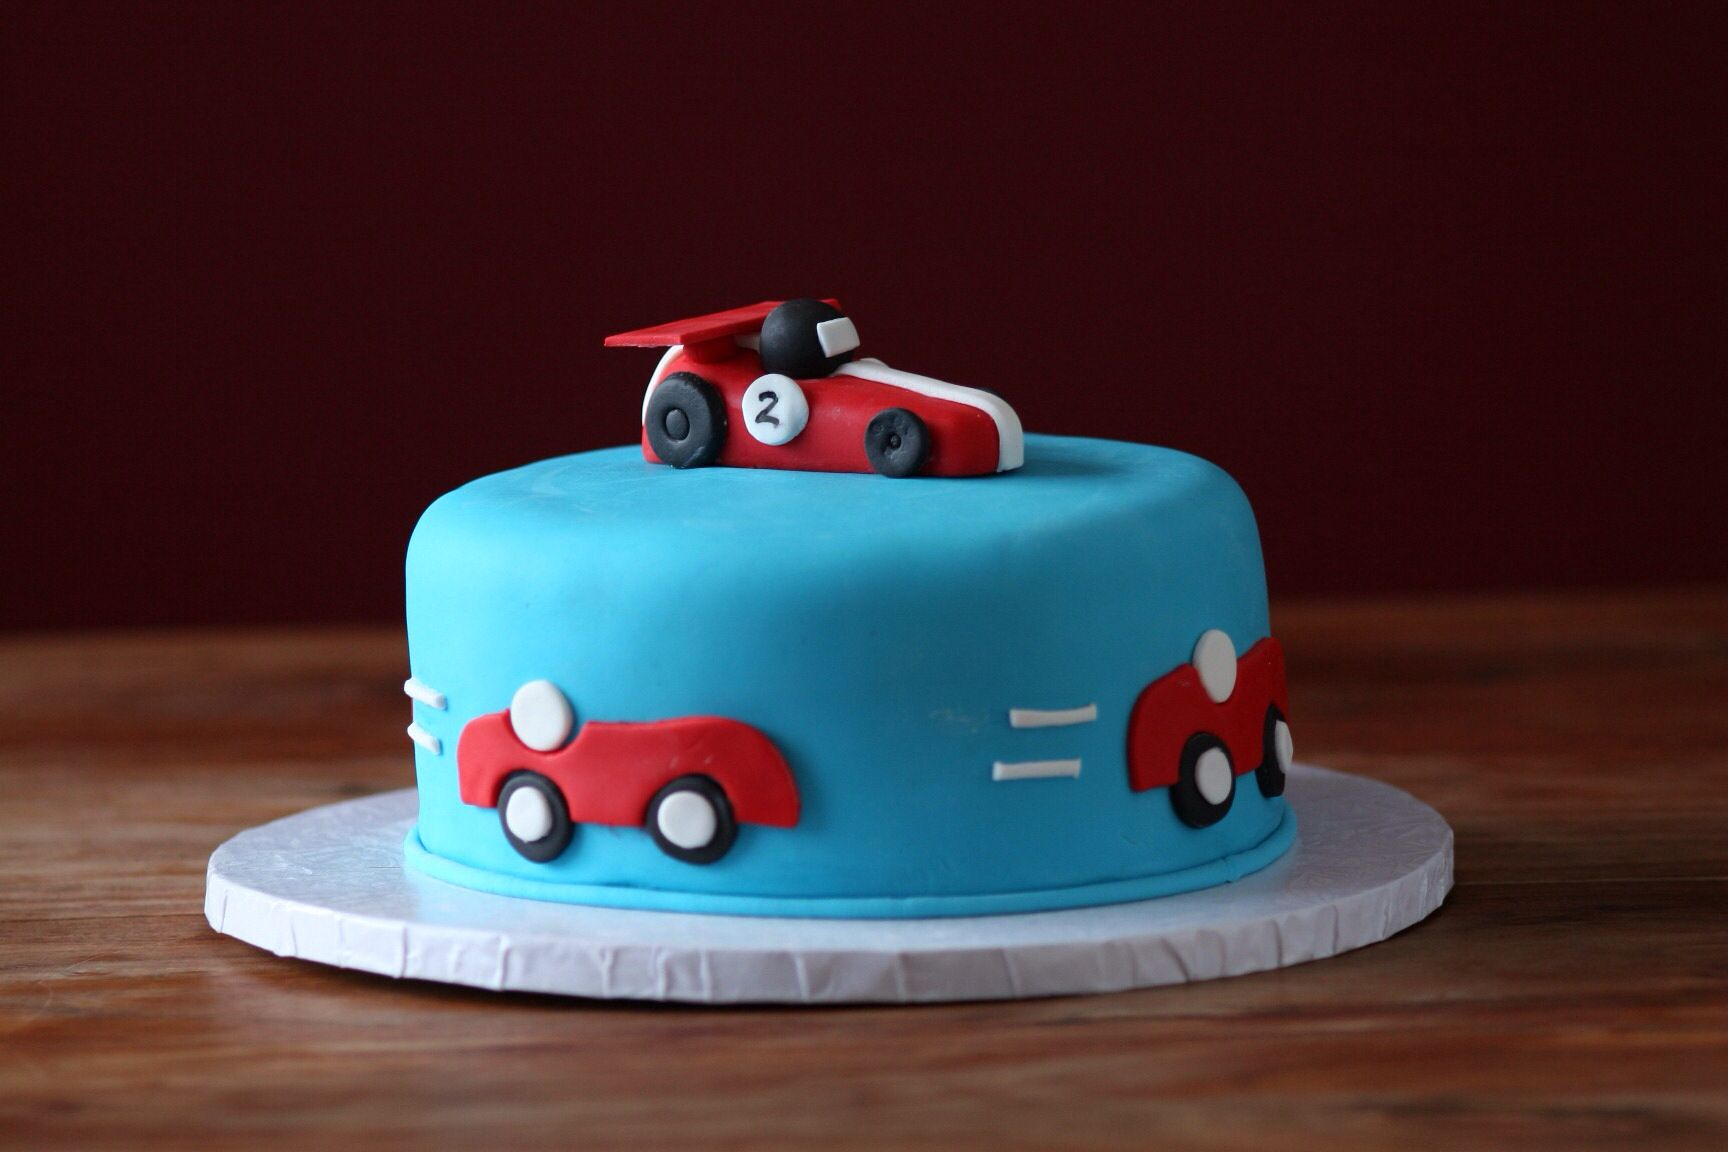 Racing Car Themed Birthday Cake For A 2 Year Old Little Boy